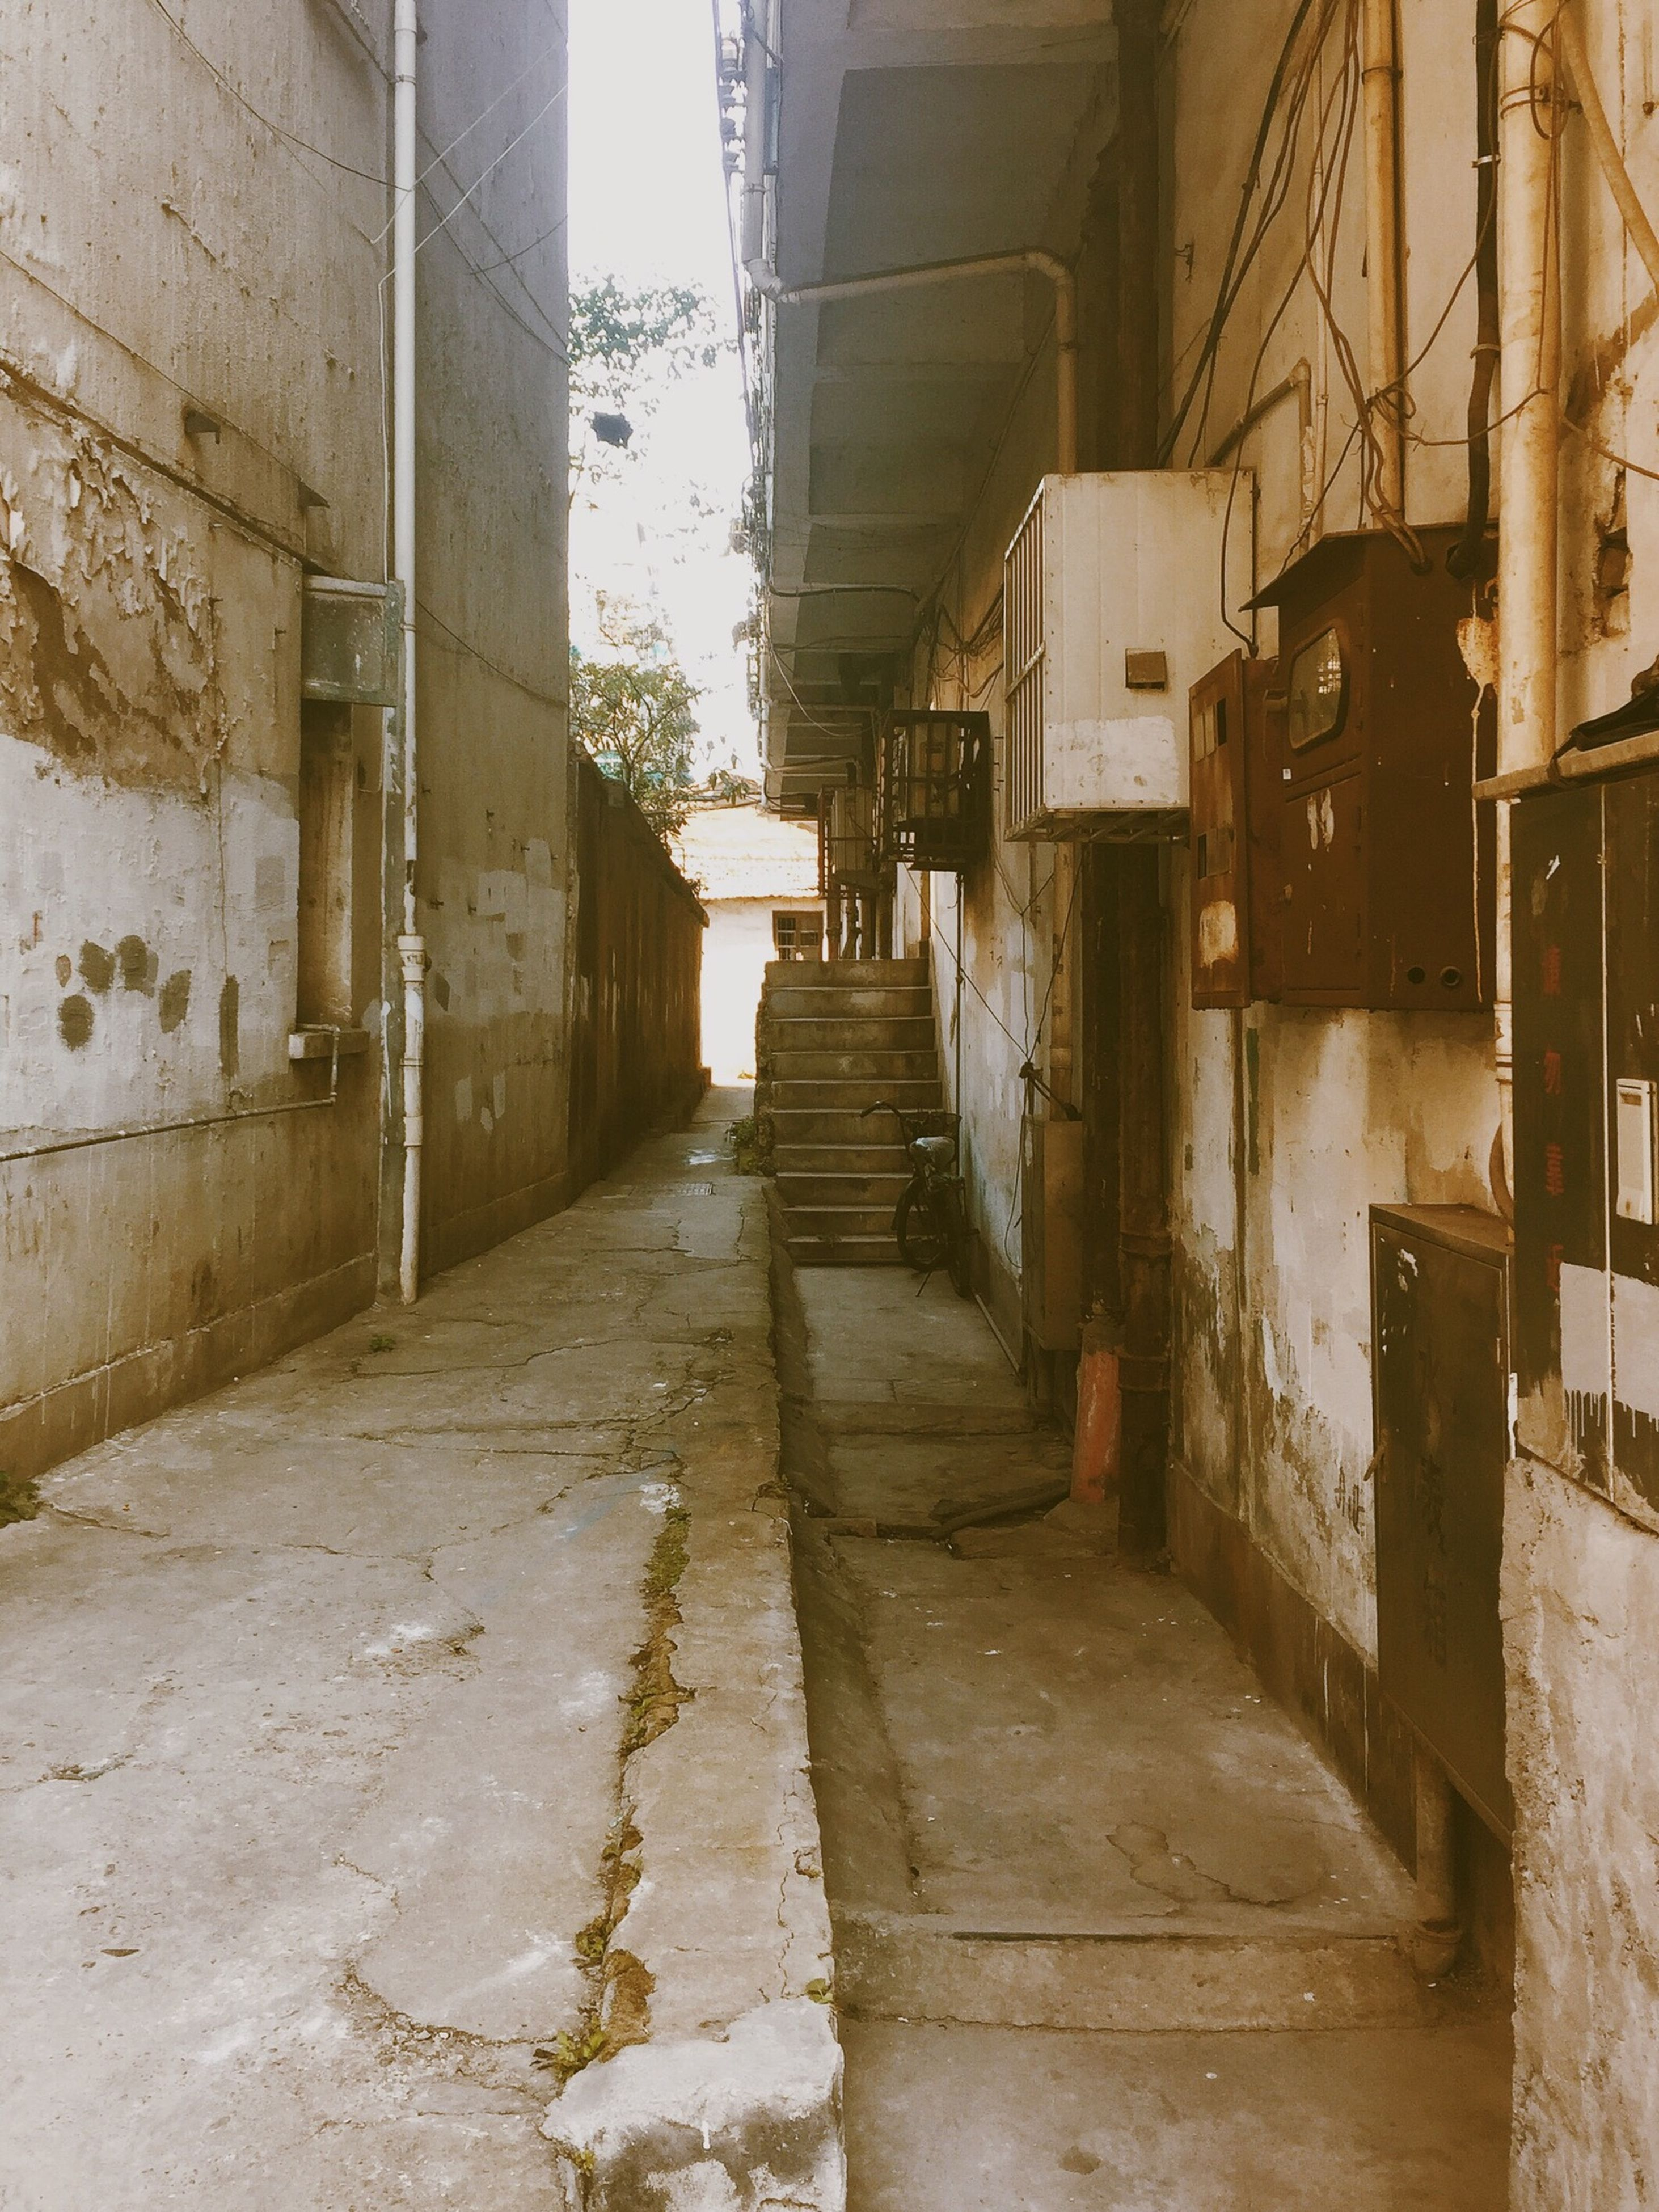 architecture, the way forward, built structure, diminishing perspective, indoors, narrow, vanishing point, corridor, building, wall - building feature, empty, old, building exterior, abandoned, alley, long, wall, no people, walkway, day